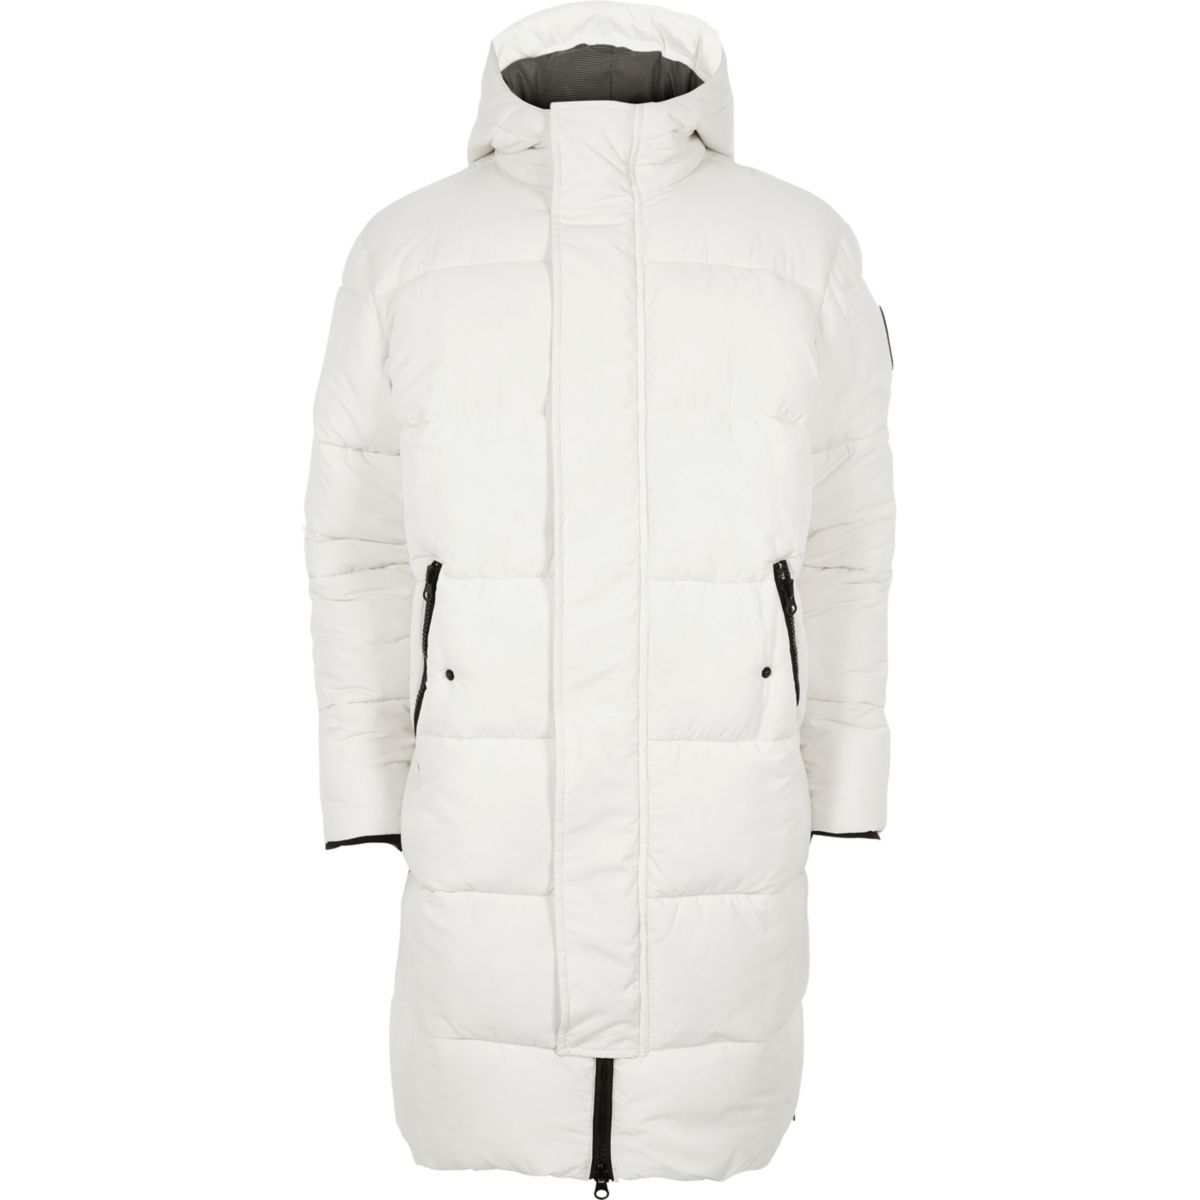 White longline hooded puffer coat